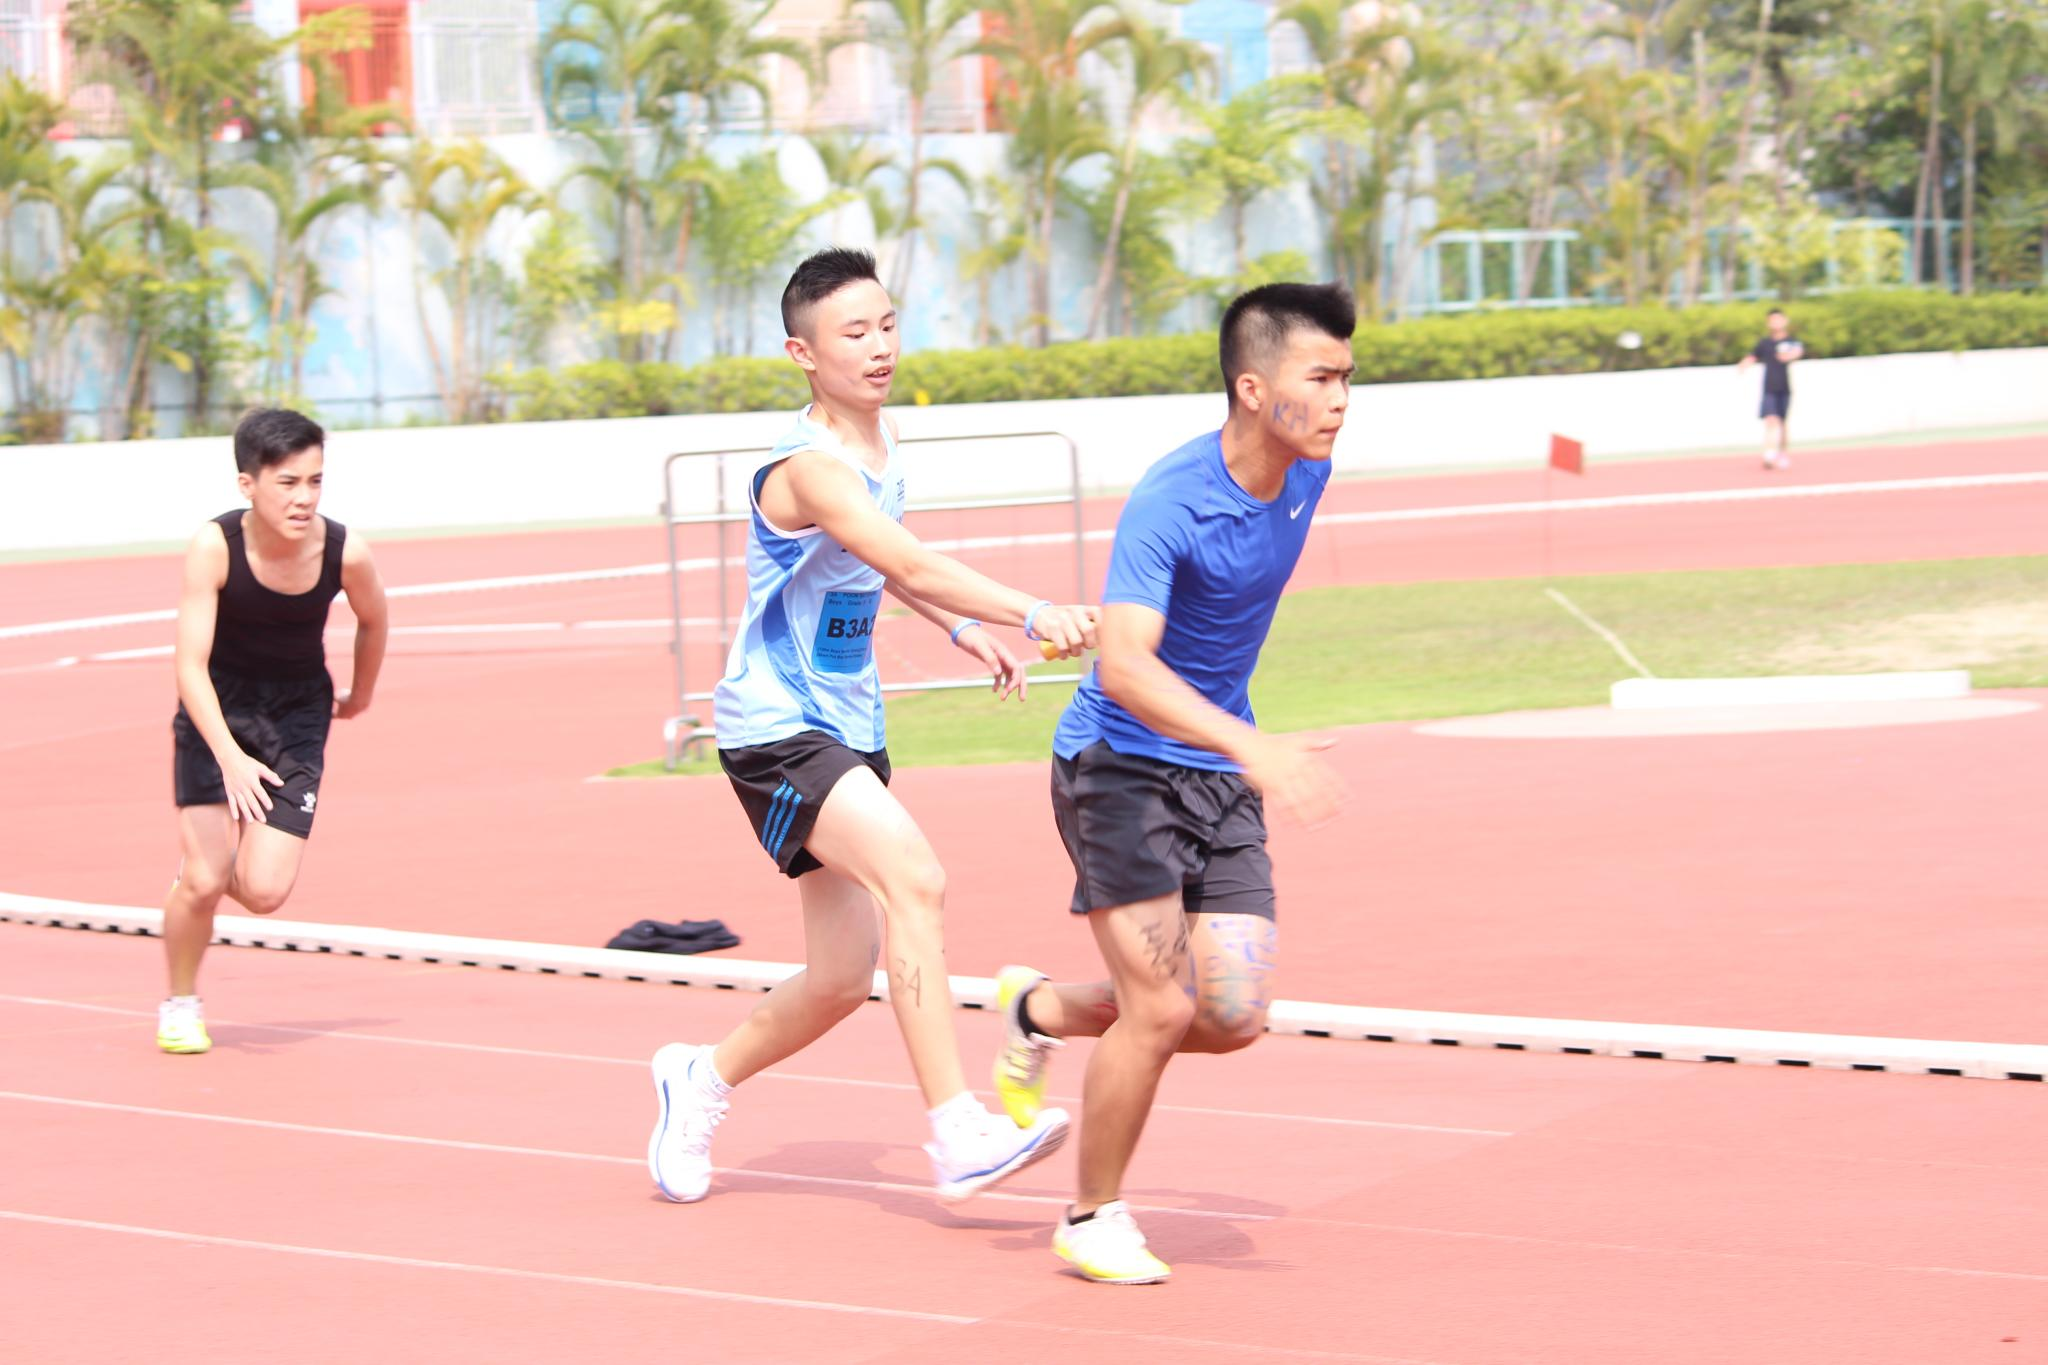 Students are racing for the 4 x 100 metres relay.